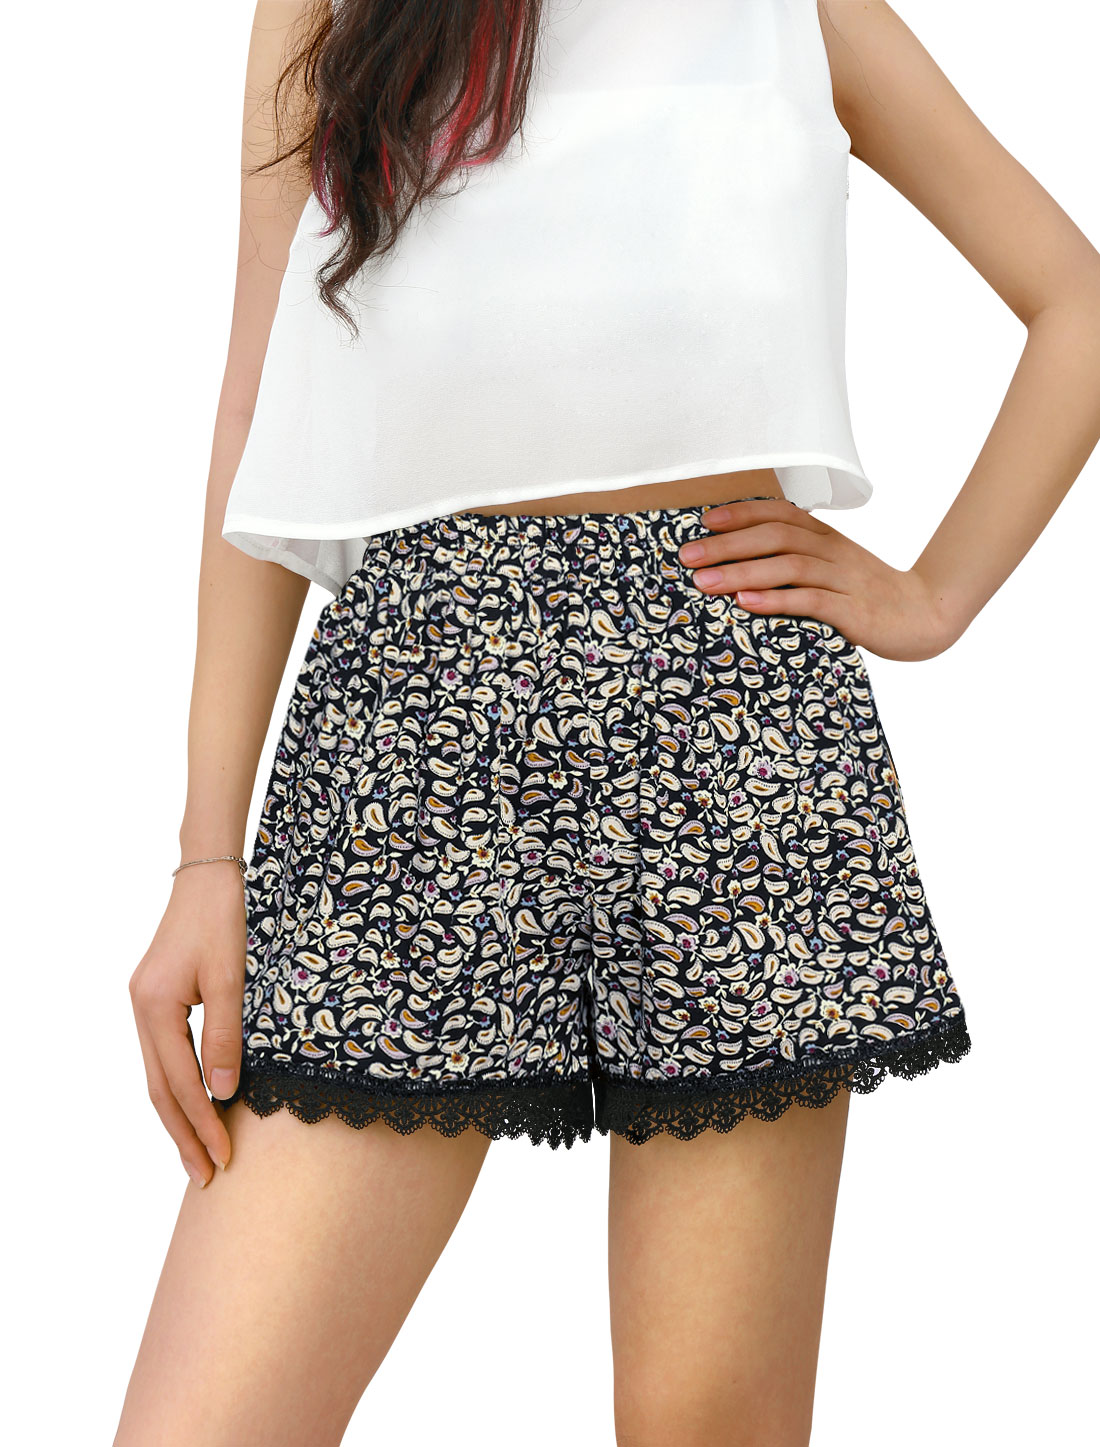 Ladies Cashew Flower Prints Lace Trim Shorts Black Beige S